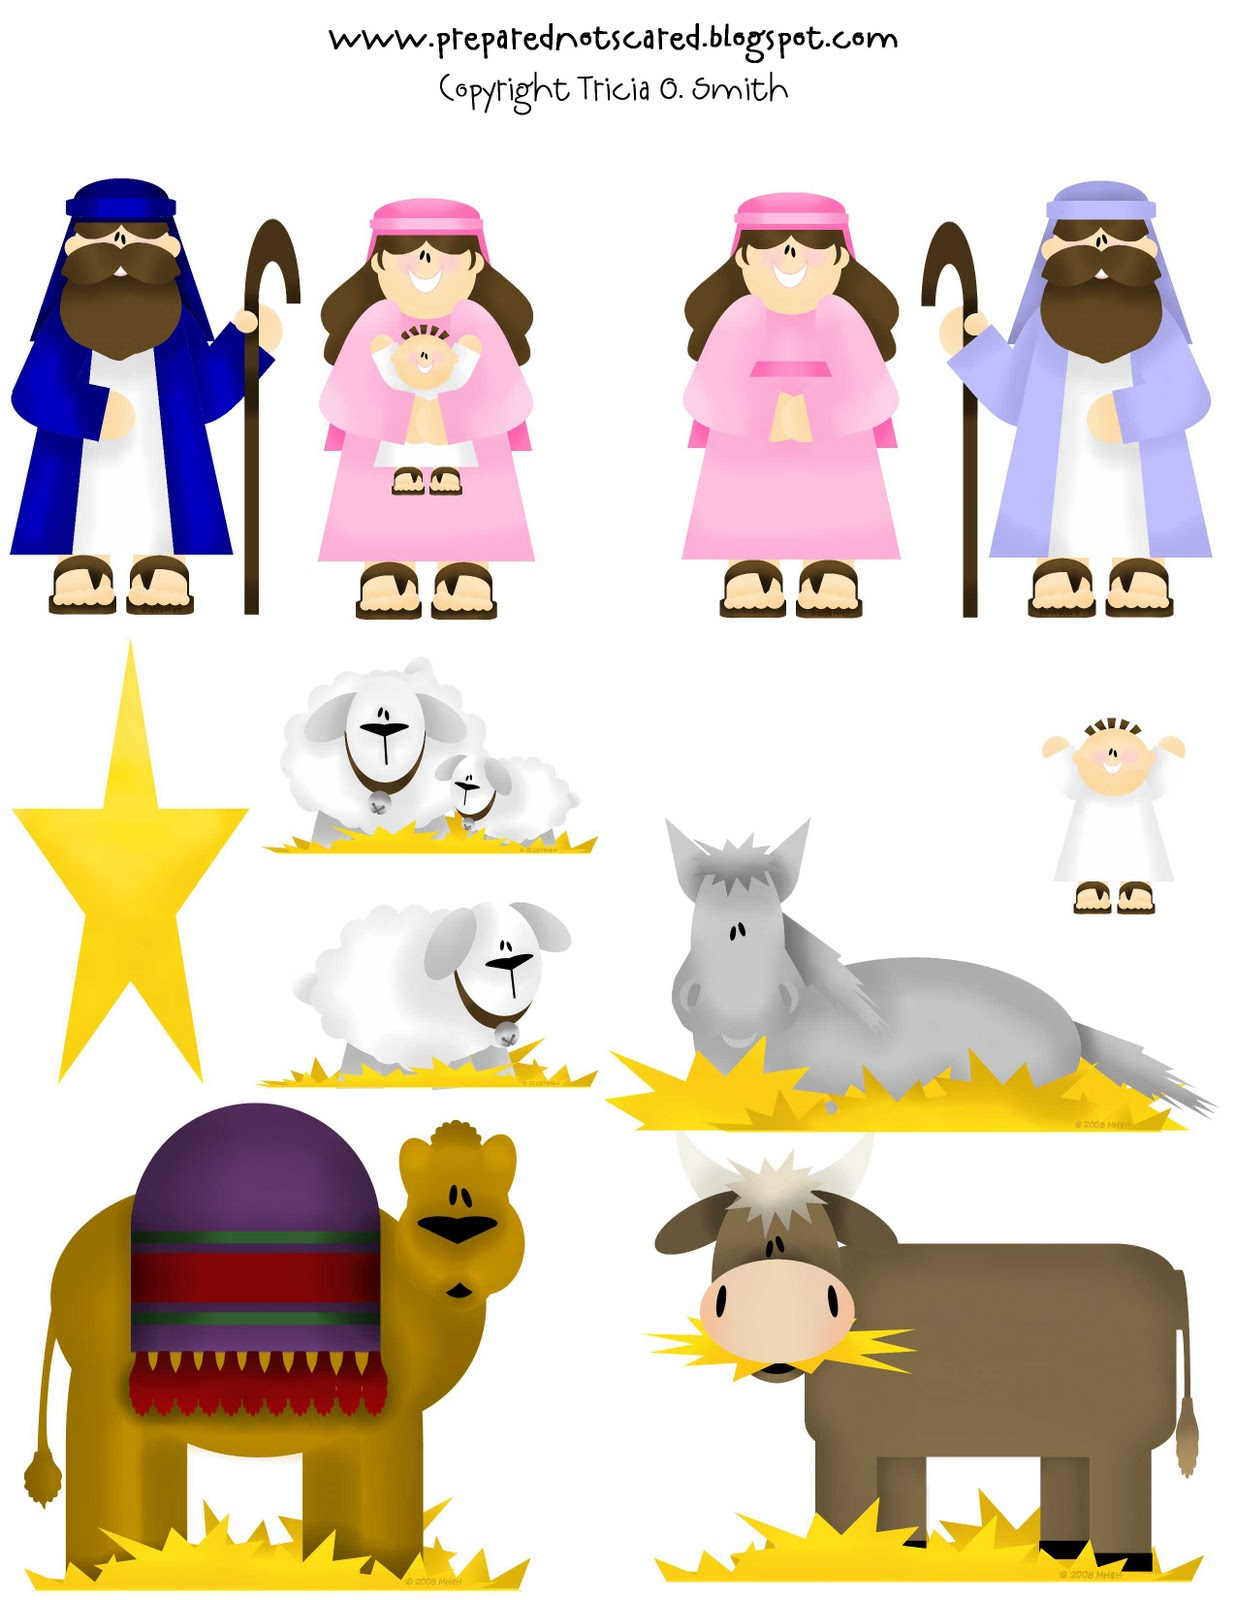 """Search Results for """"Nativity Scene Paper Cutout Characters ..."""